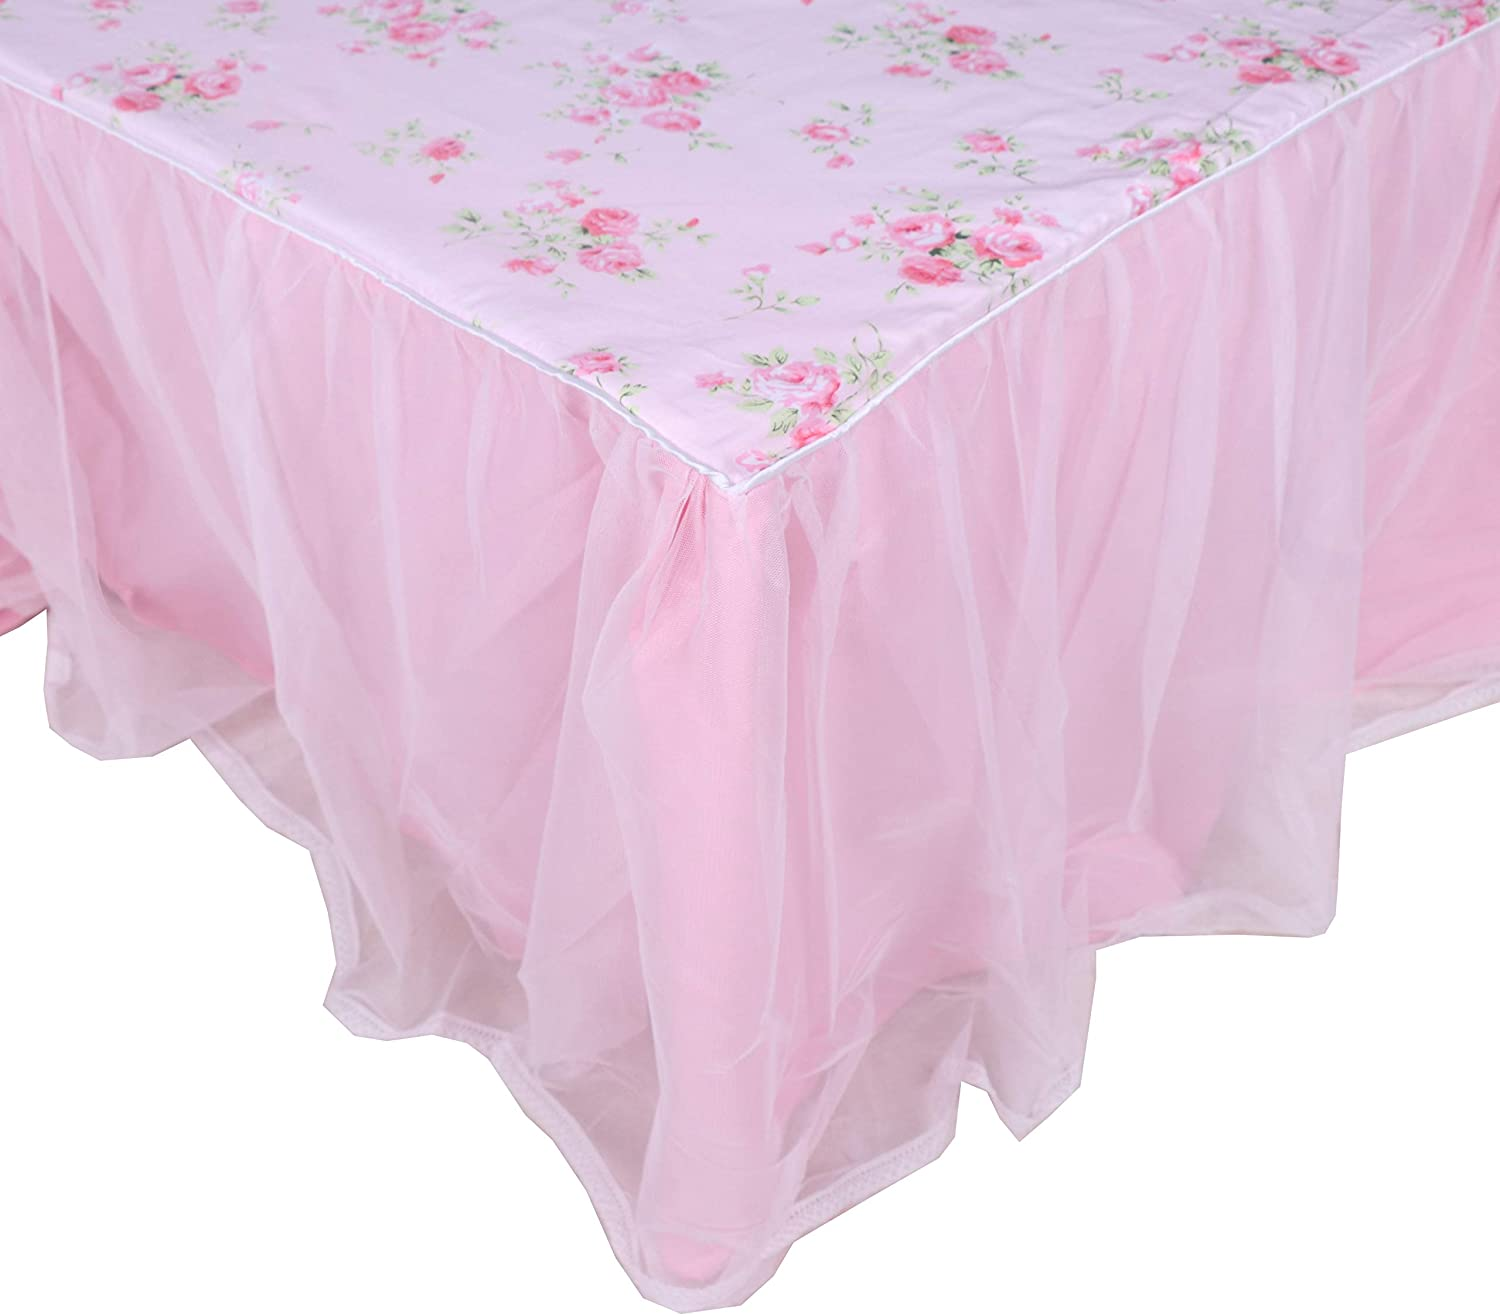 Max 2021new shipping free shipping 53% OFF LELVA Dust Ruffled Bed Skirts Queen Lace Wrap Ru Around Size